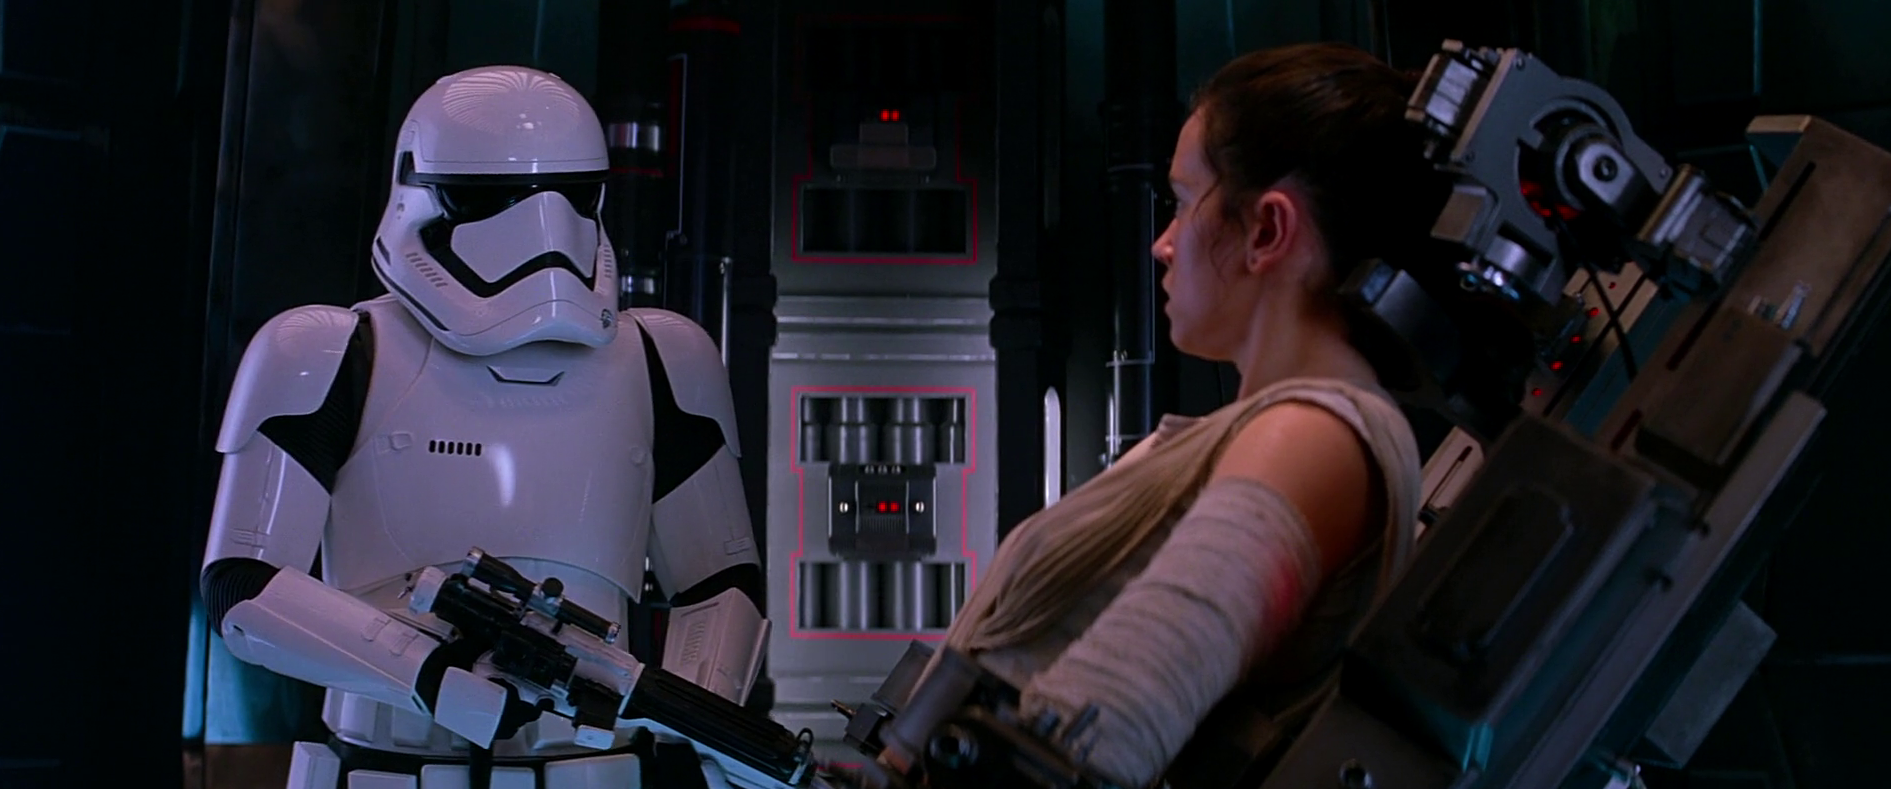 Rey on Starkiller Base in Star Wars: The Force Awakens